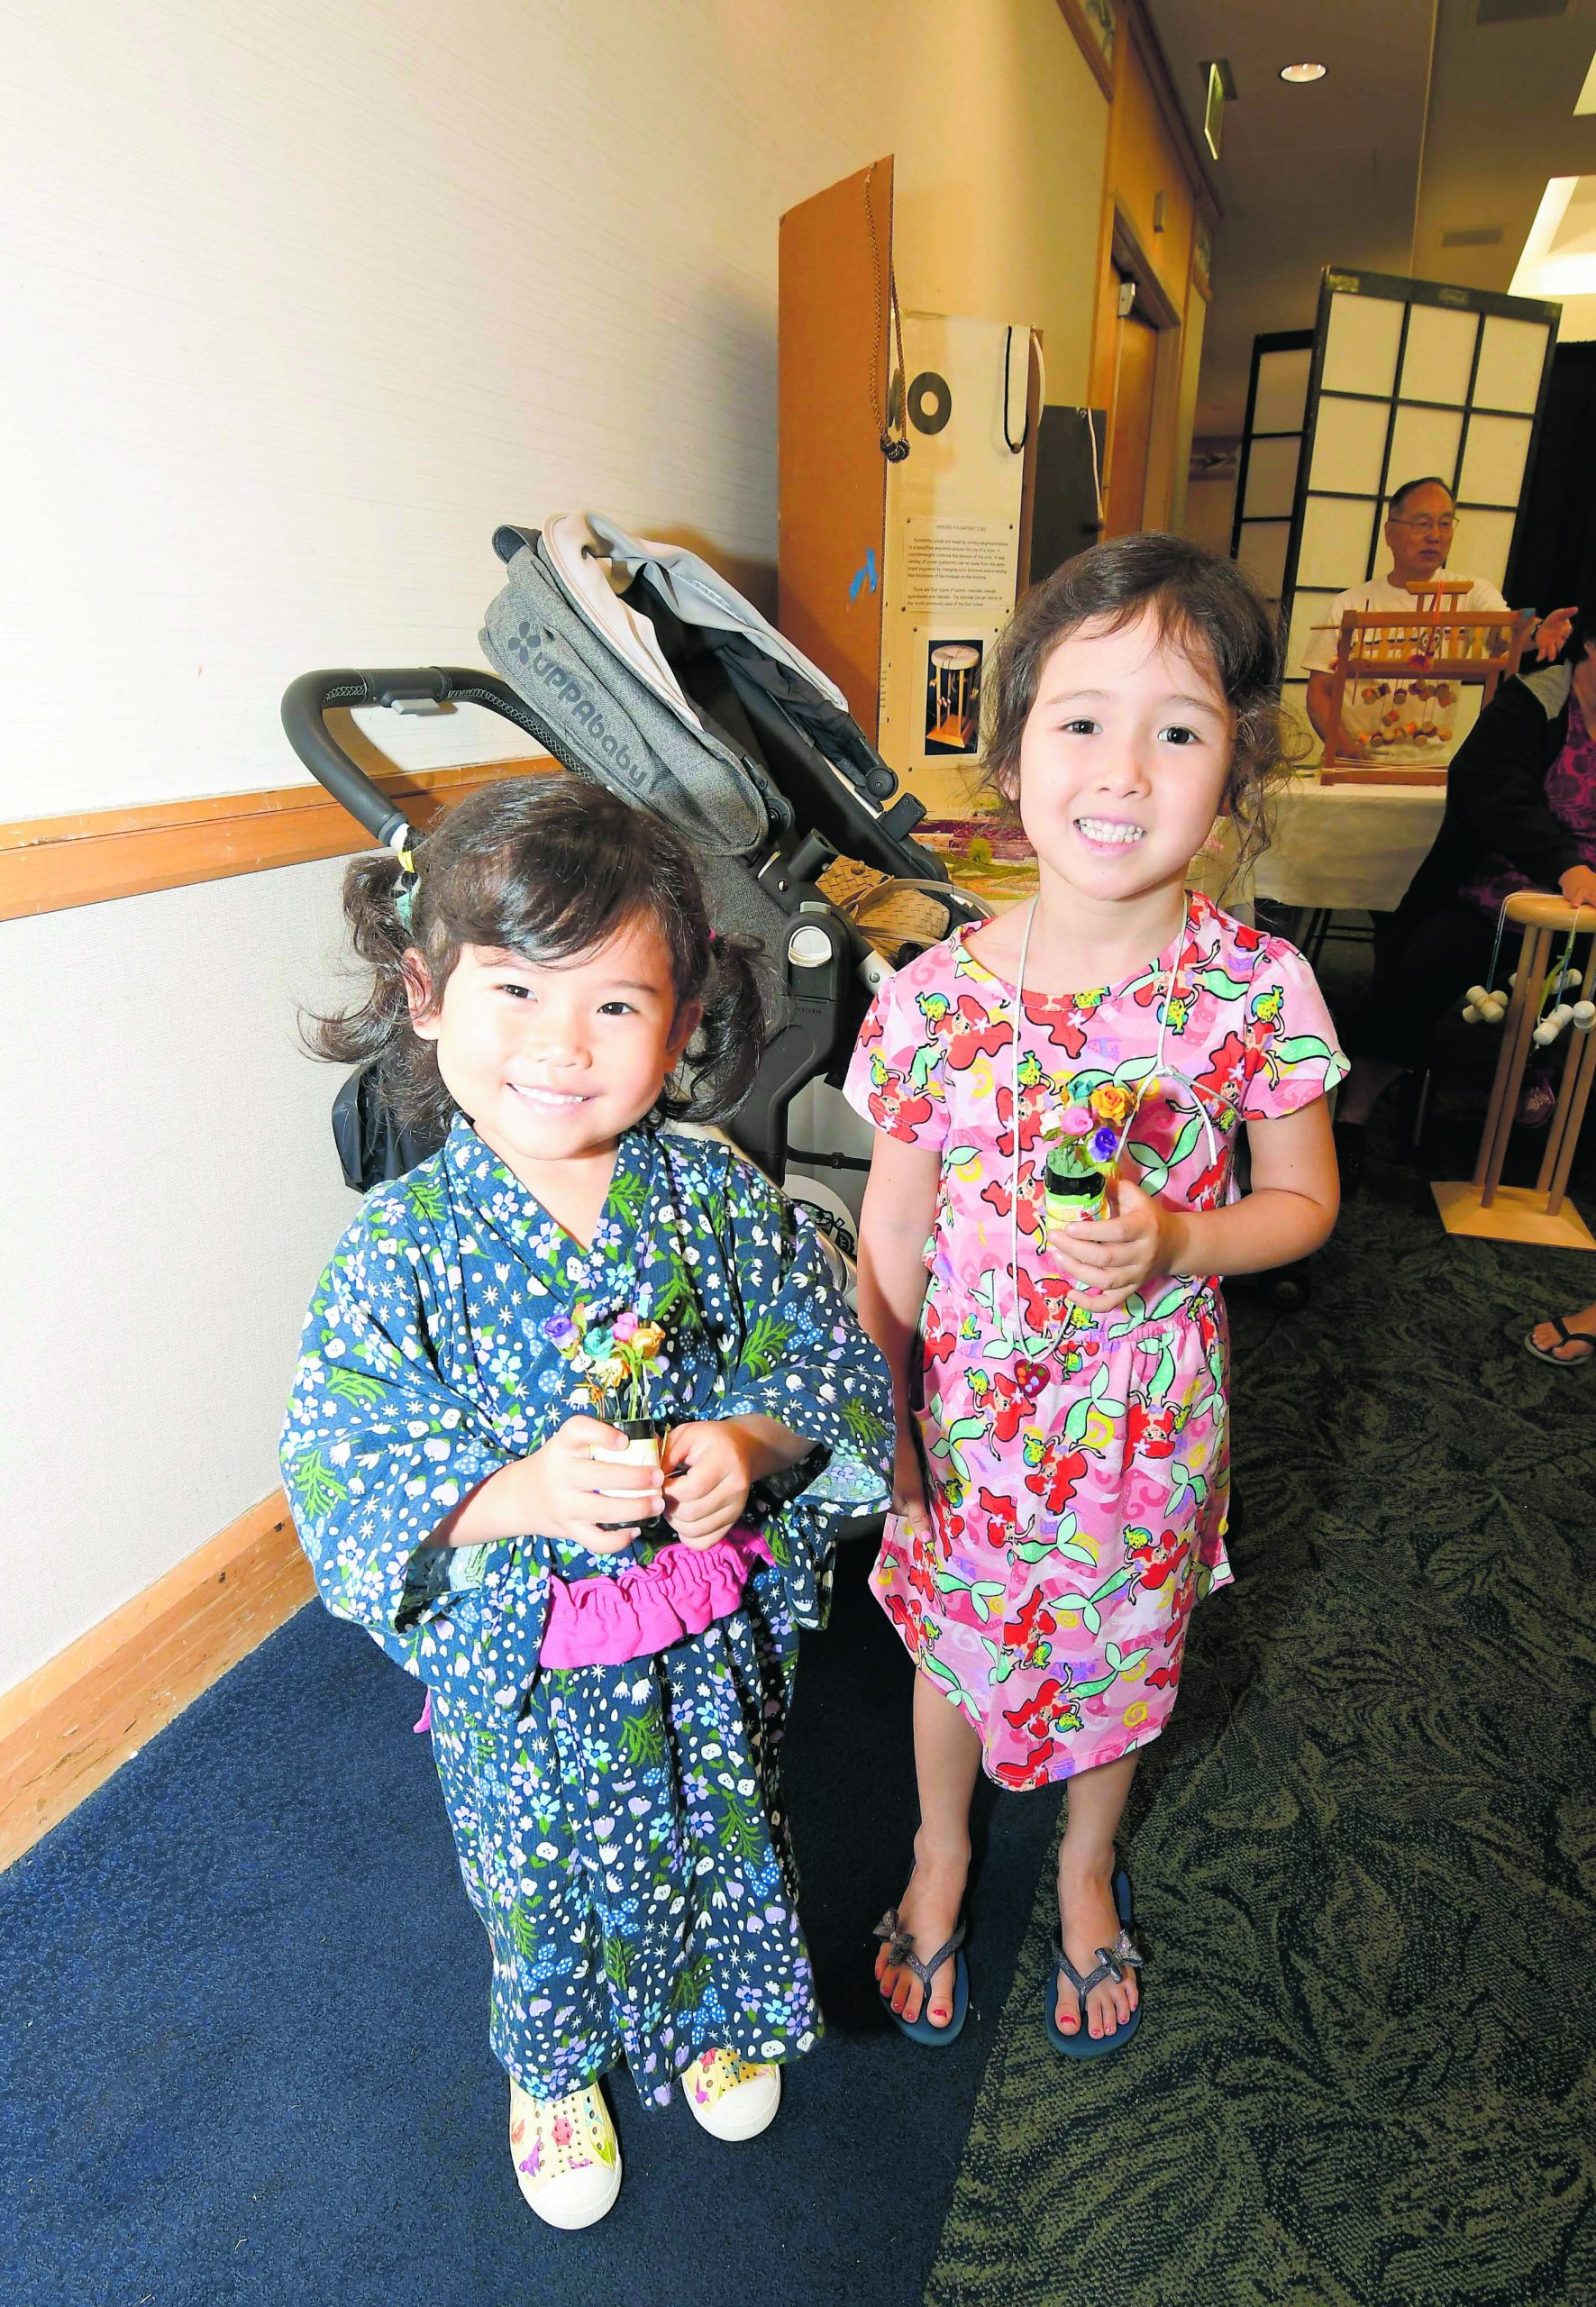 Lilia Yamamoto (left) and Ella Garst, both 4 years old, show off their make-and-take flower arrangement.